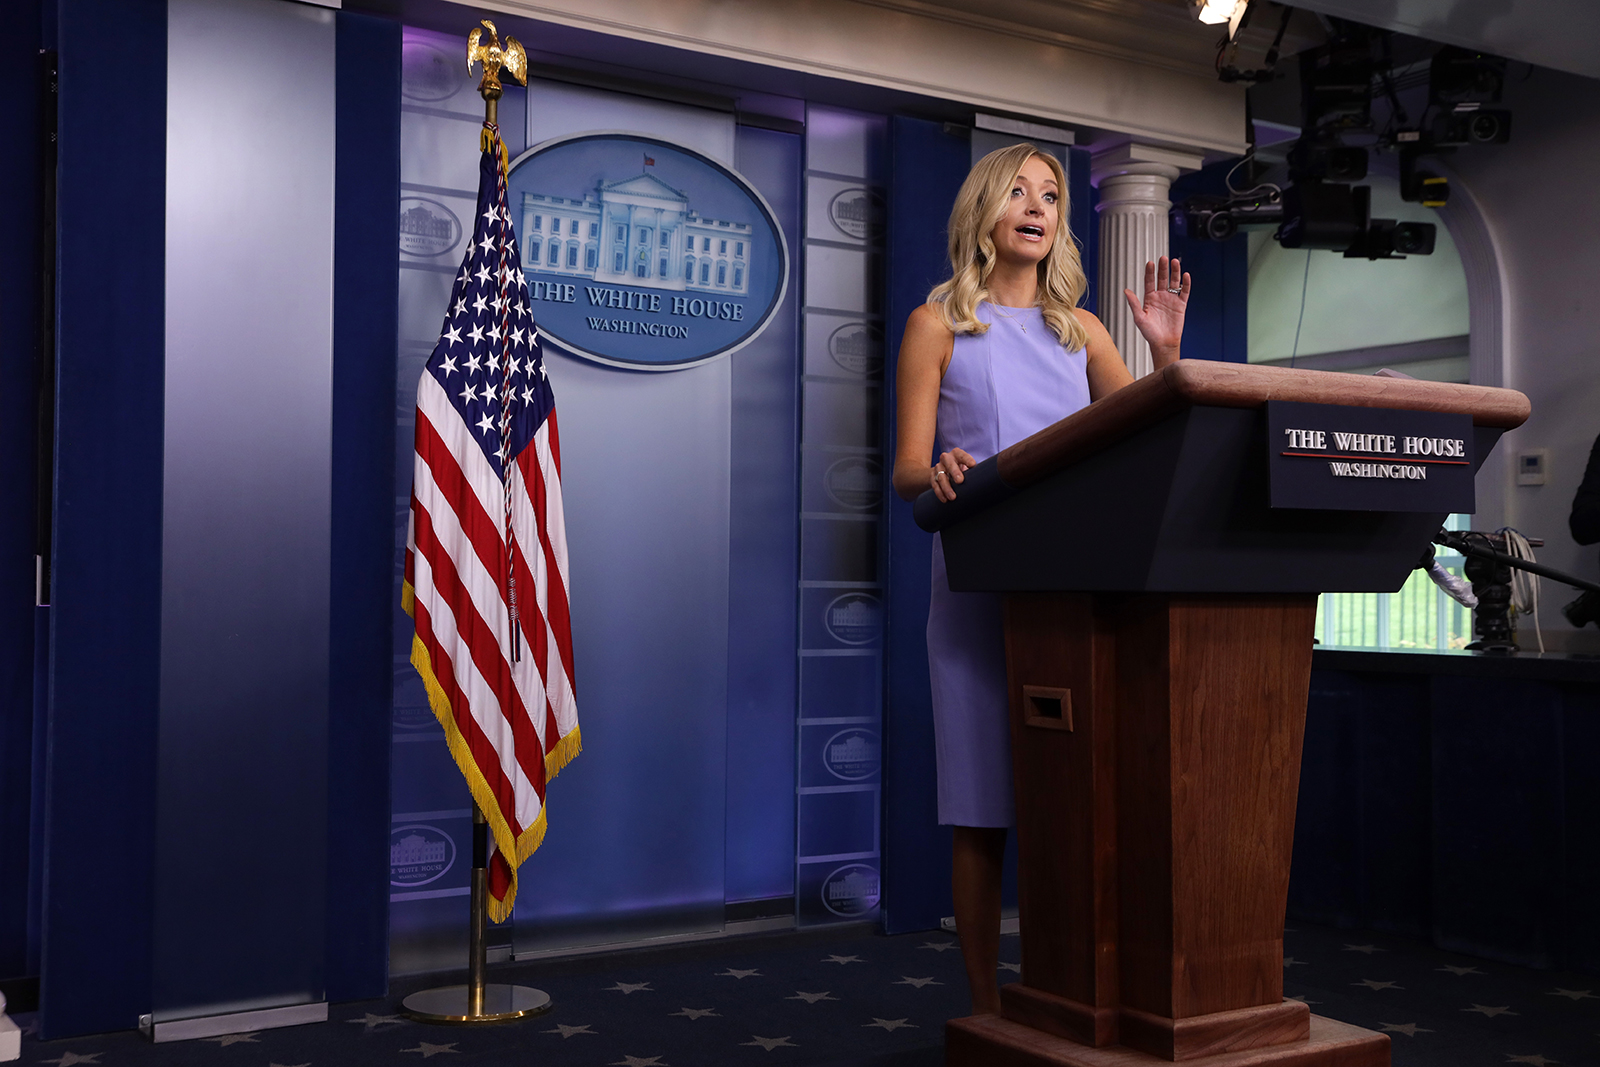 White House Press Secretary Kayleigh McEnany speaks during a news briefing at the White House in Washington, on June 17.